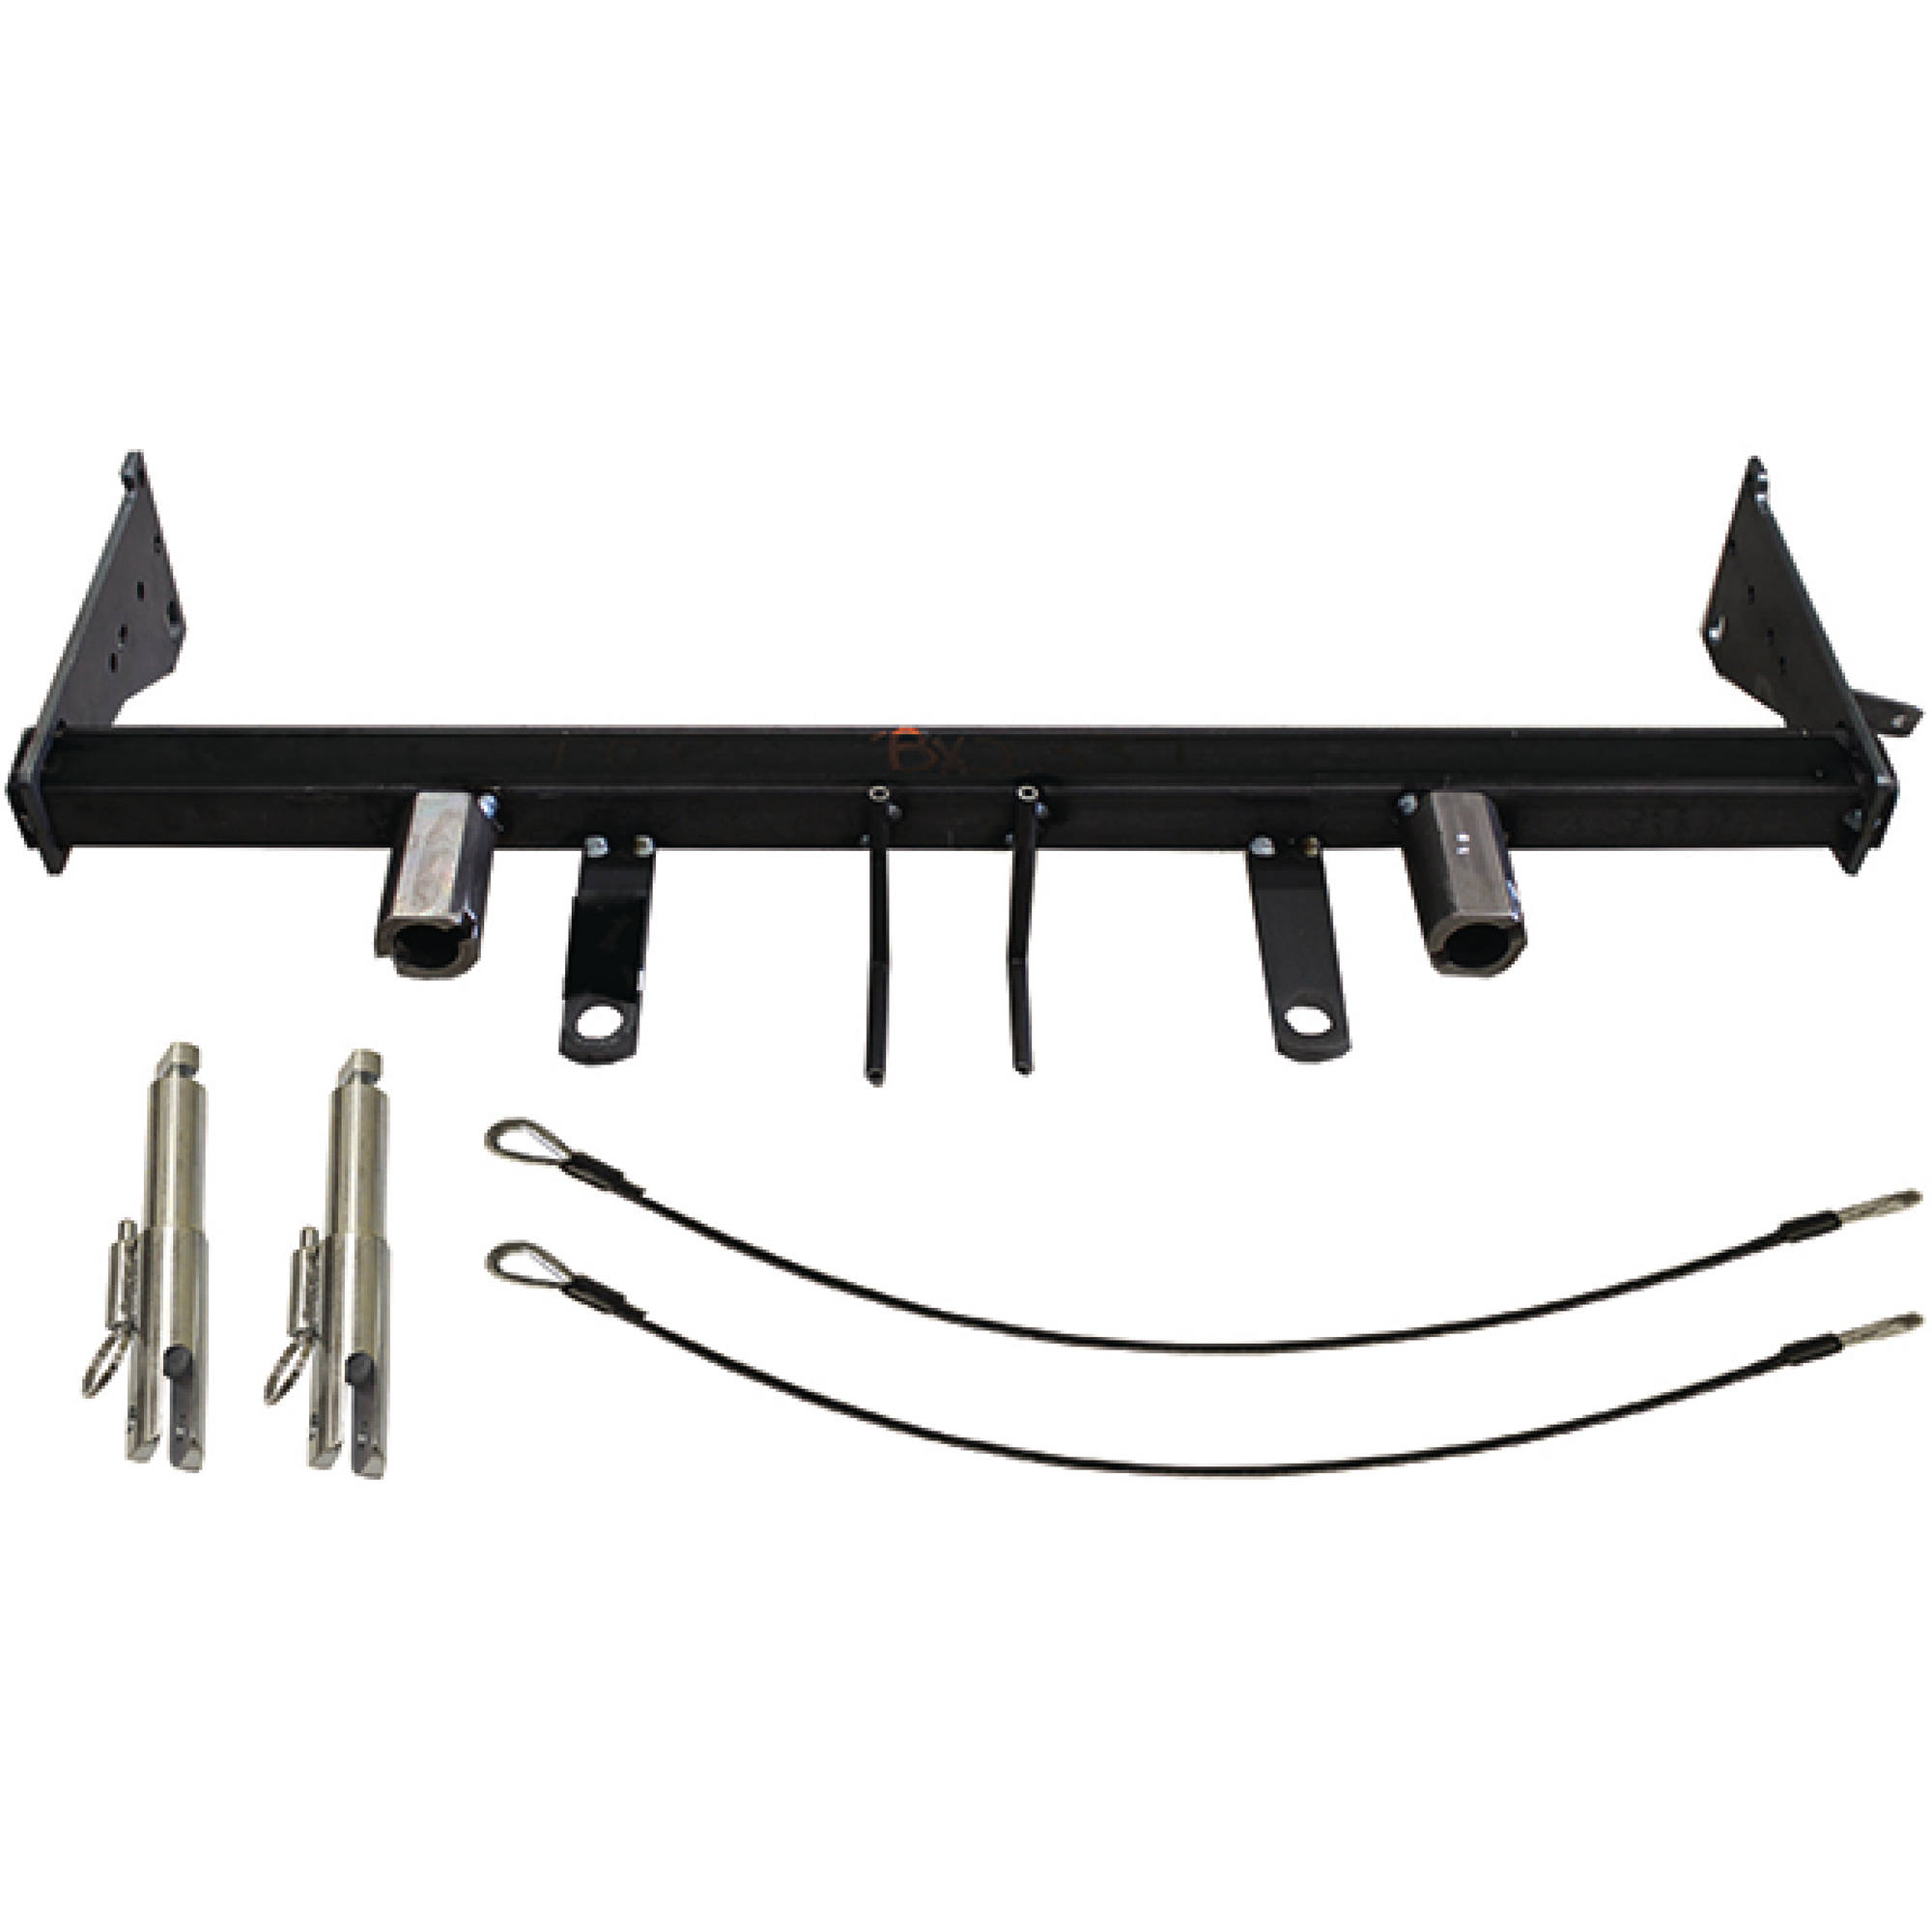 Blue Ox BX2412 Removable Tab RV Tow Baseplates for 2016-2017 Ram Rebel Pickup 1500 by Blue Ox